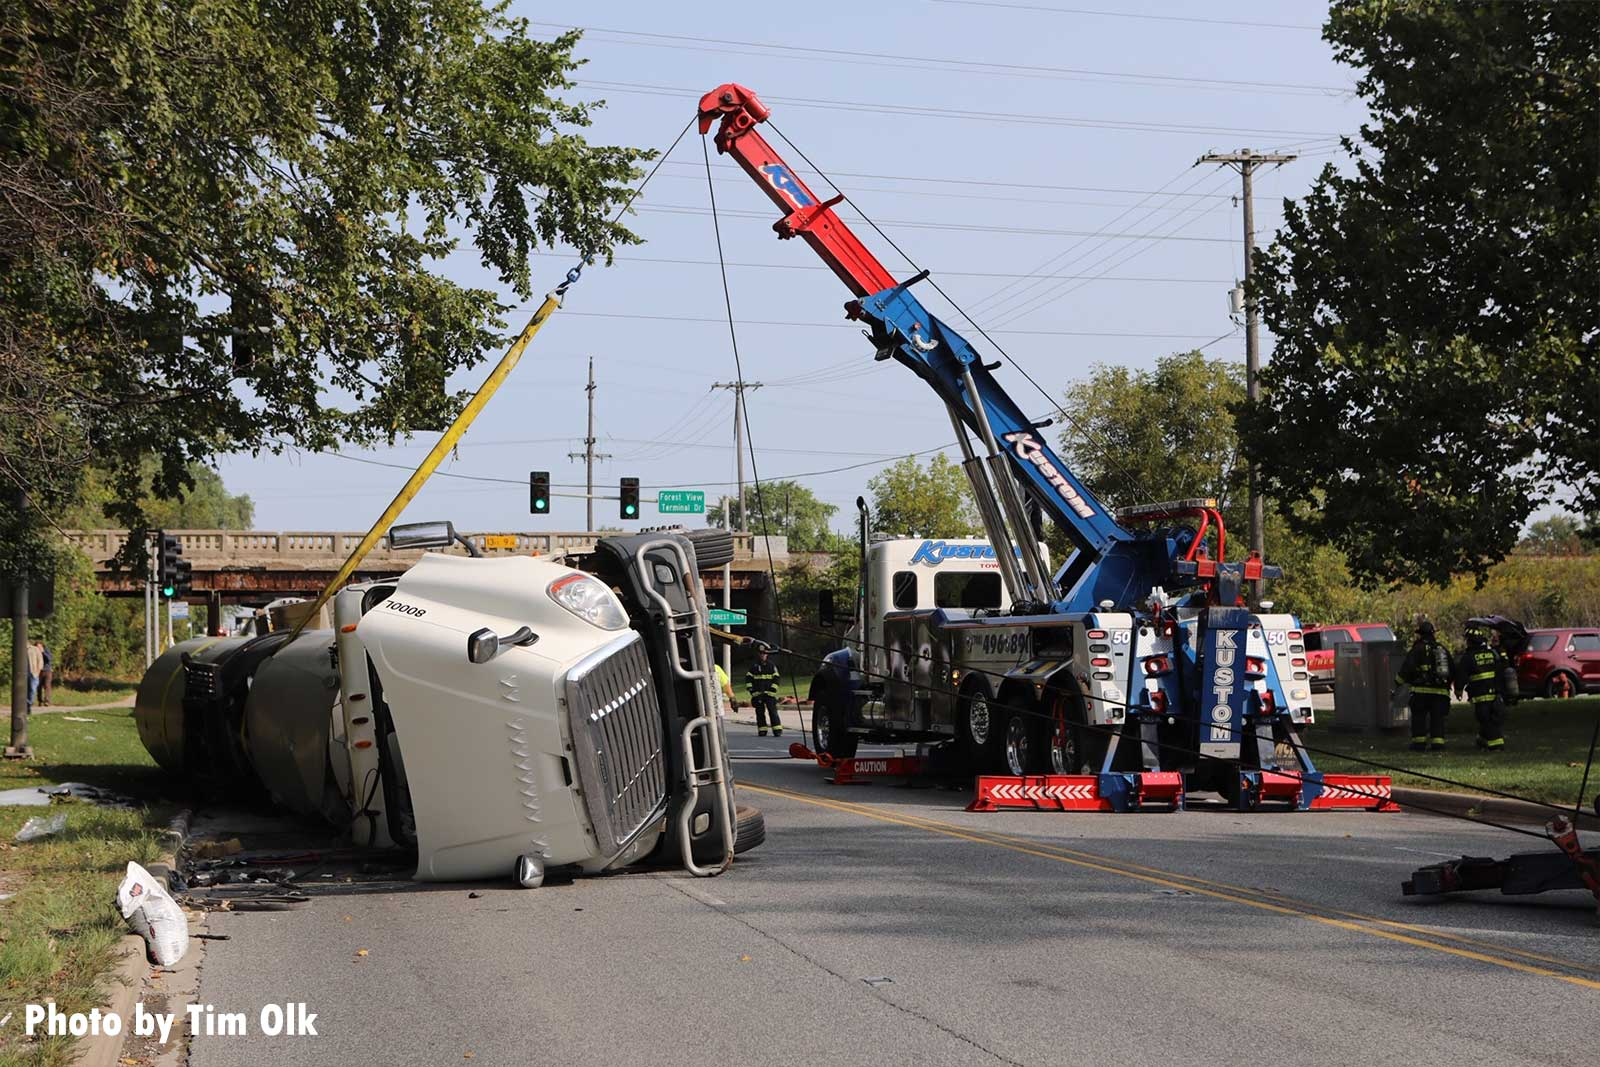 A crane truck lifts the rolled tanker truck